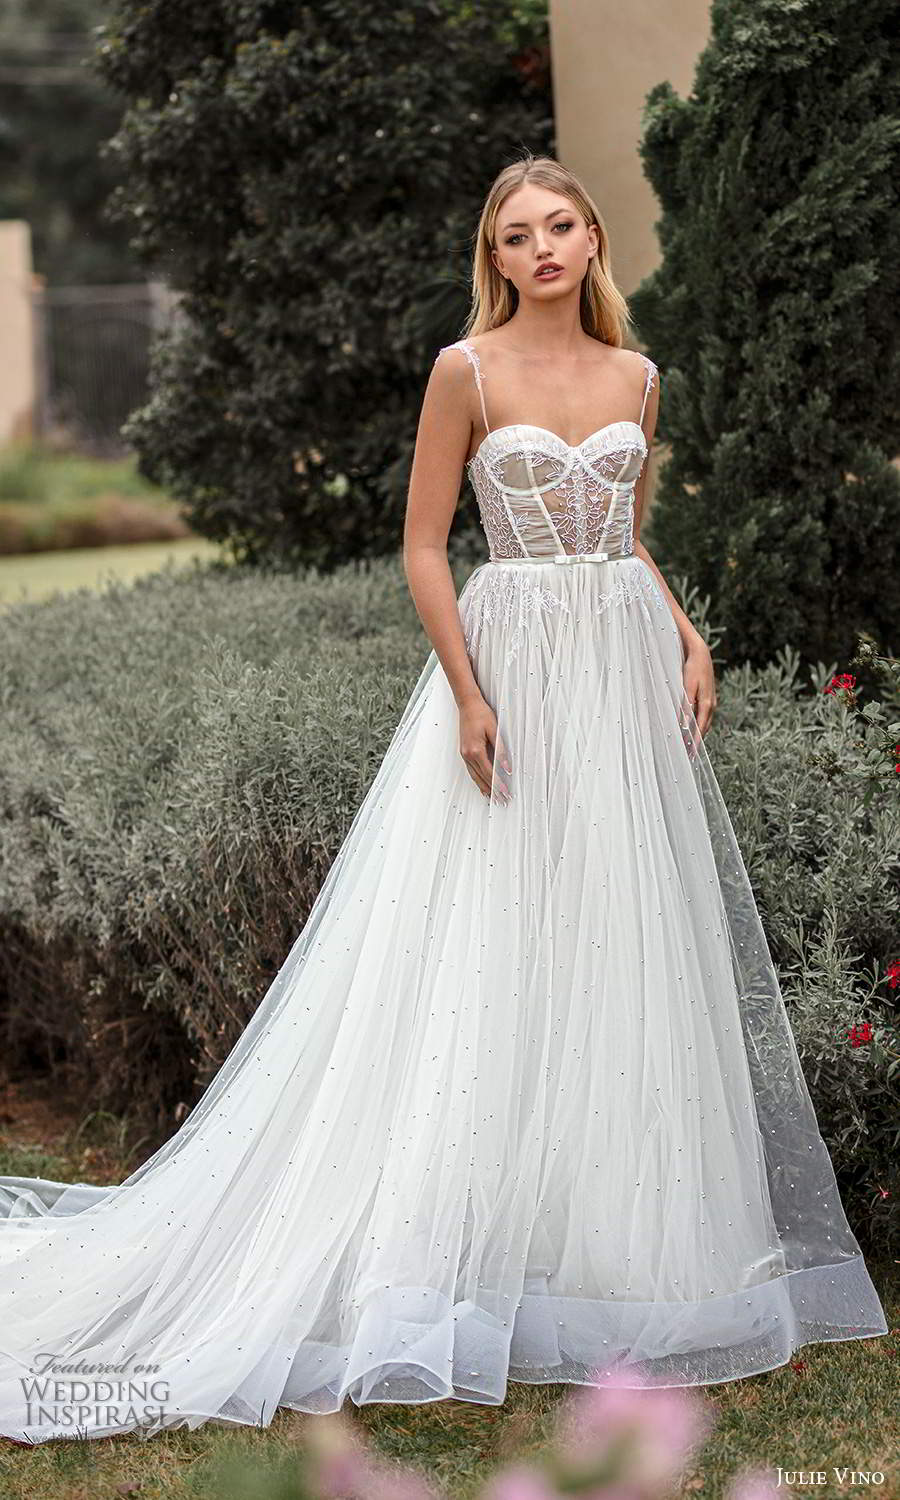 julie vino 2021 romanzo bridal sleeveless straps sweetheart neckline embellished bodice a line ball gown wedding dress chapel train (3) mv